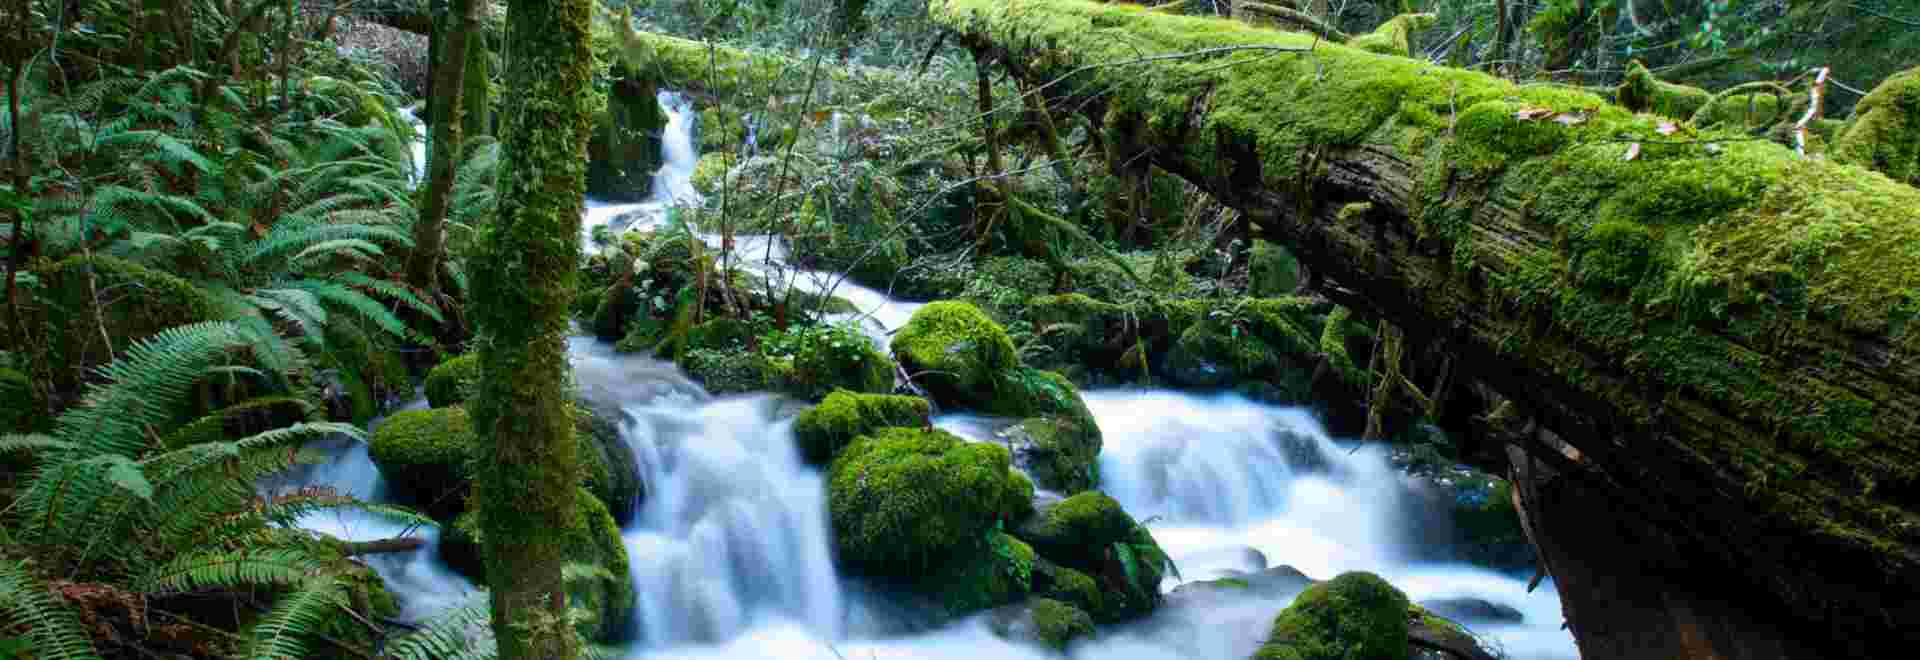 Moss growing over a fallen log and rocks covered with moss in the middle of a flowing stream